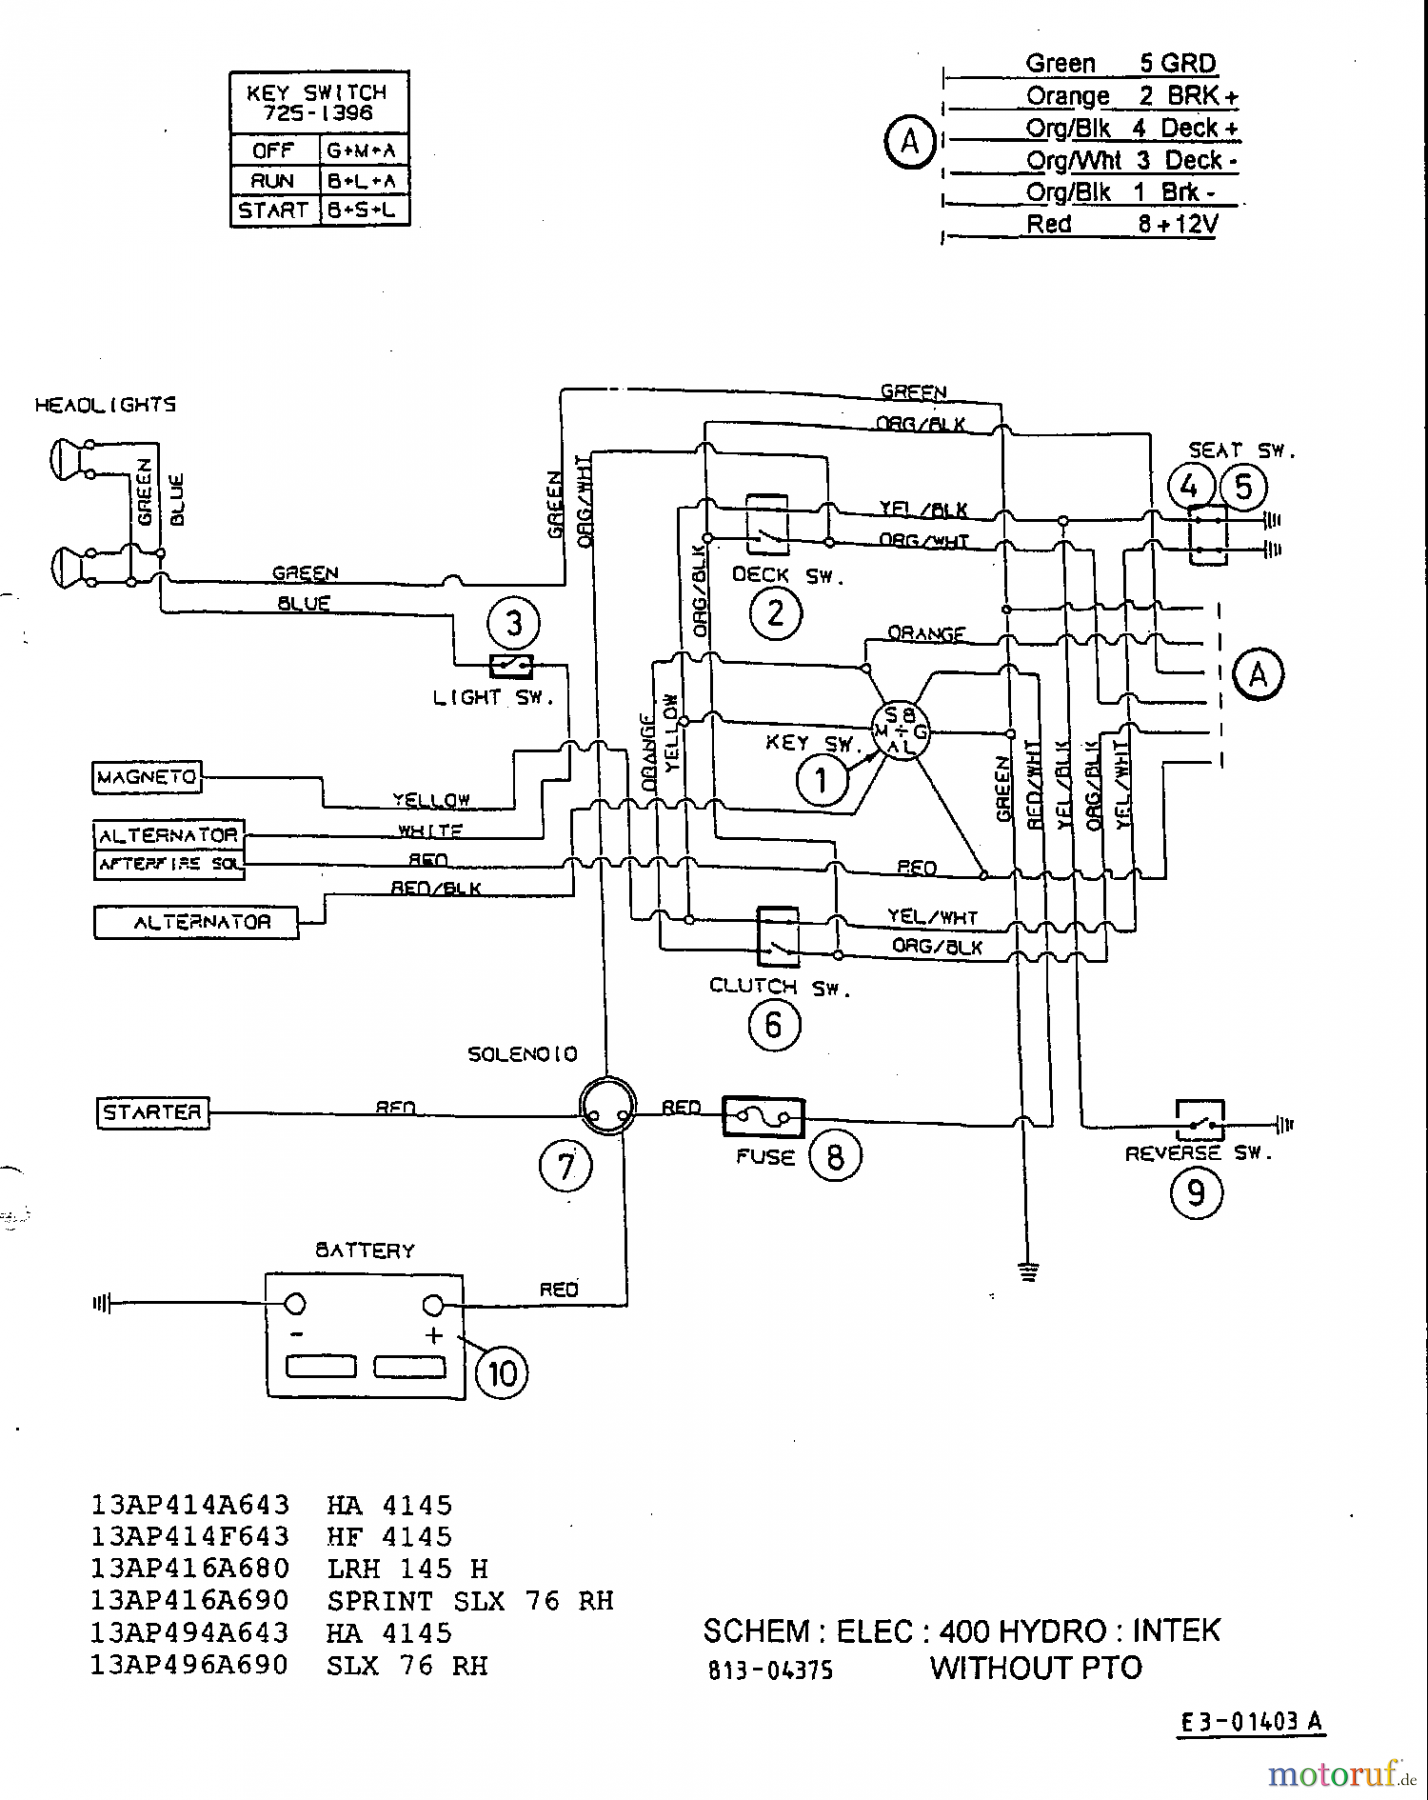 Mtd Riding Mower Wiring Diagram With Yard Machine On Riding Mower, Diagram,  Dads,